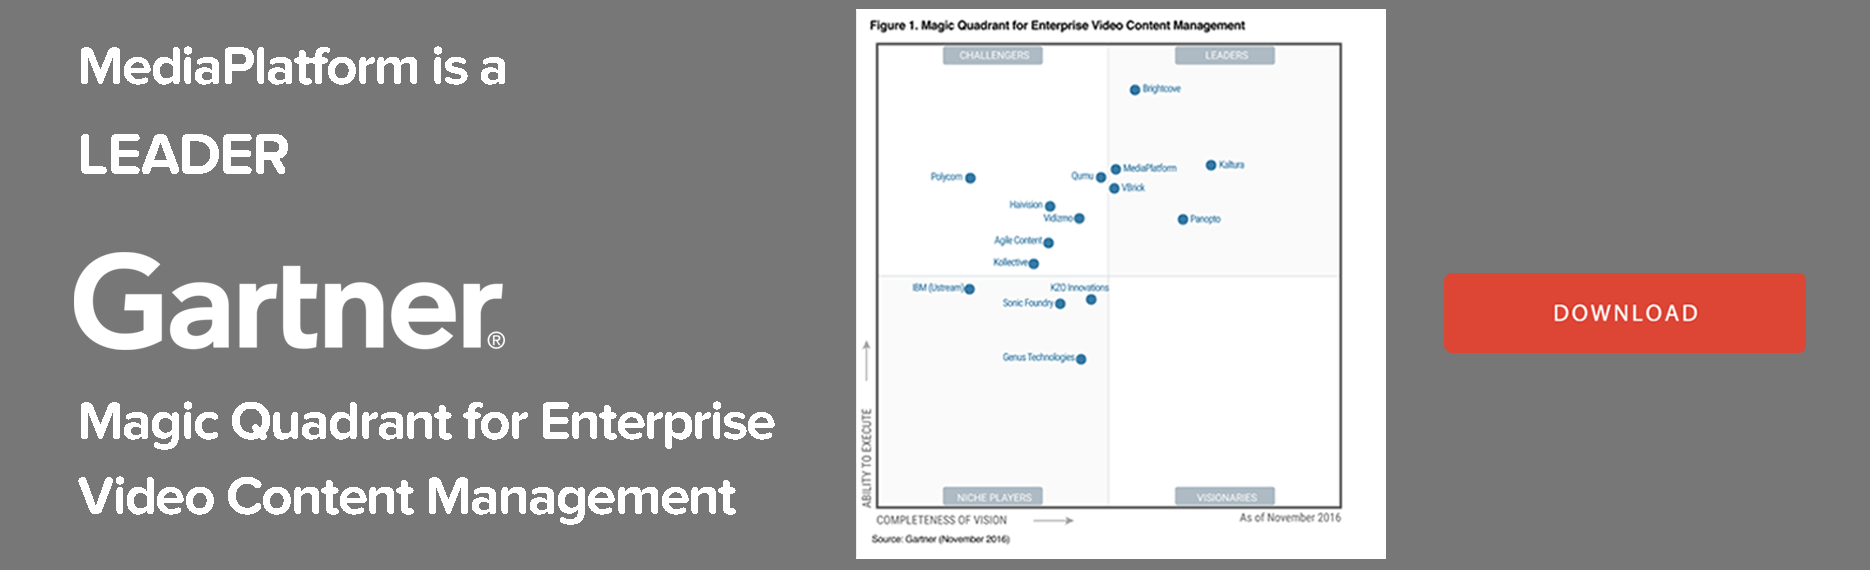 MediaPlatform a Leader in Gartner Magic Quadrant